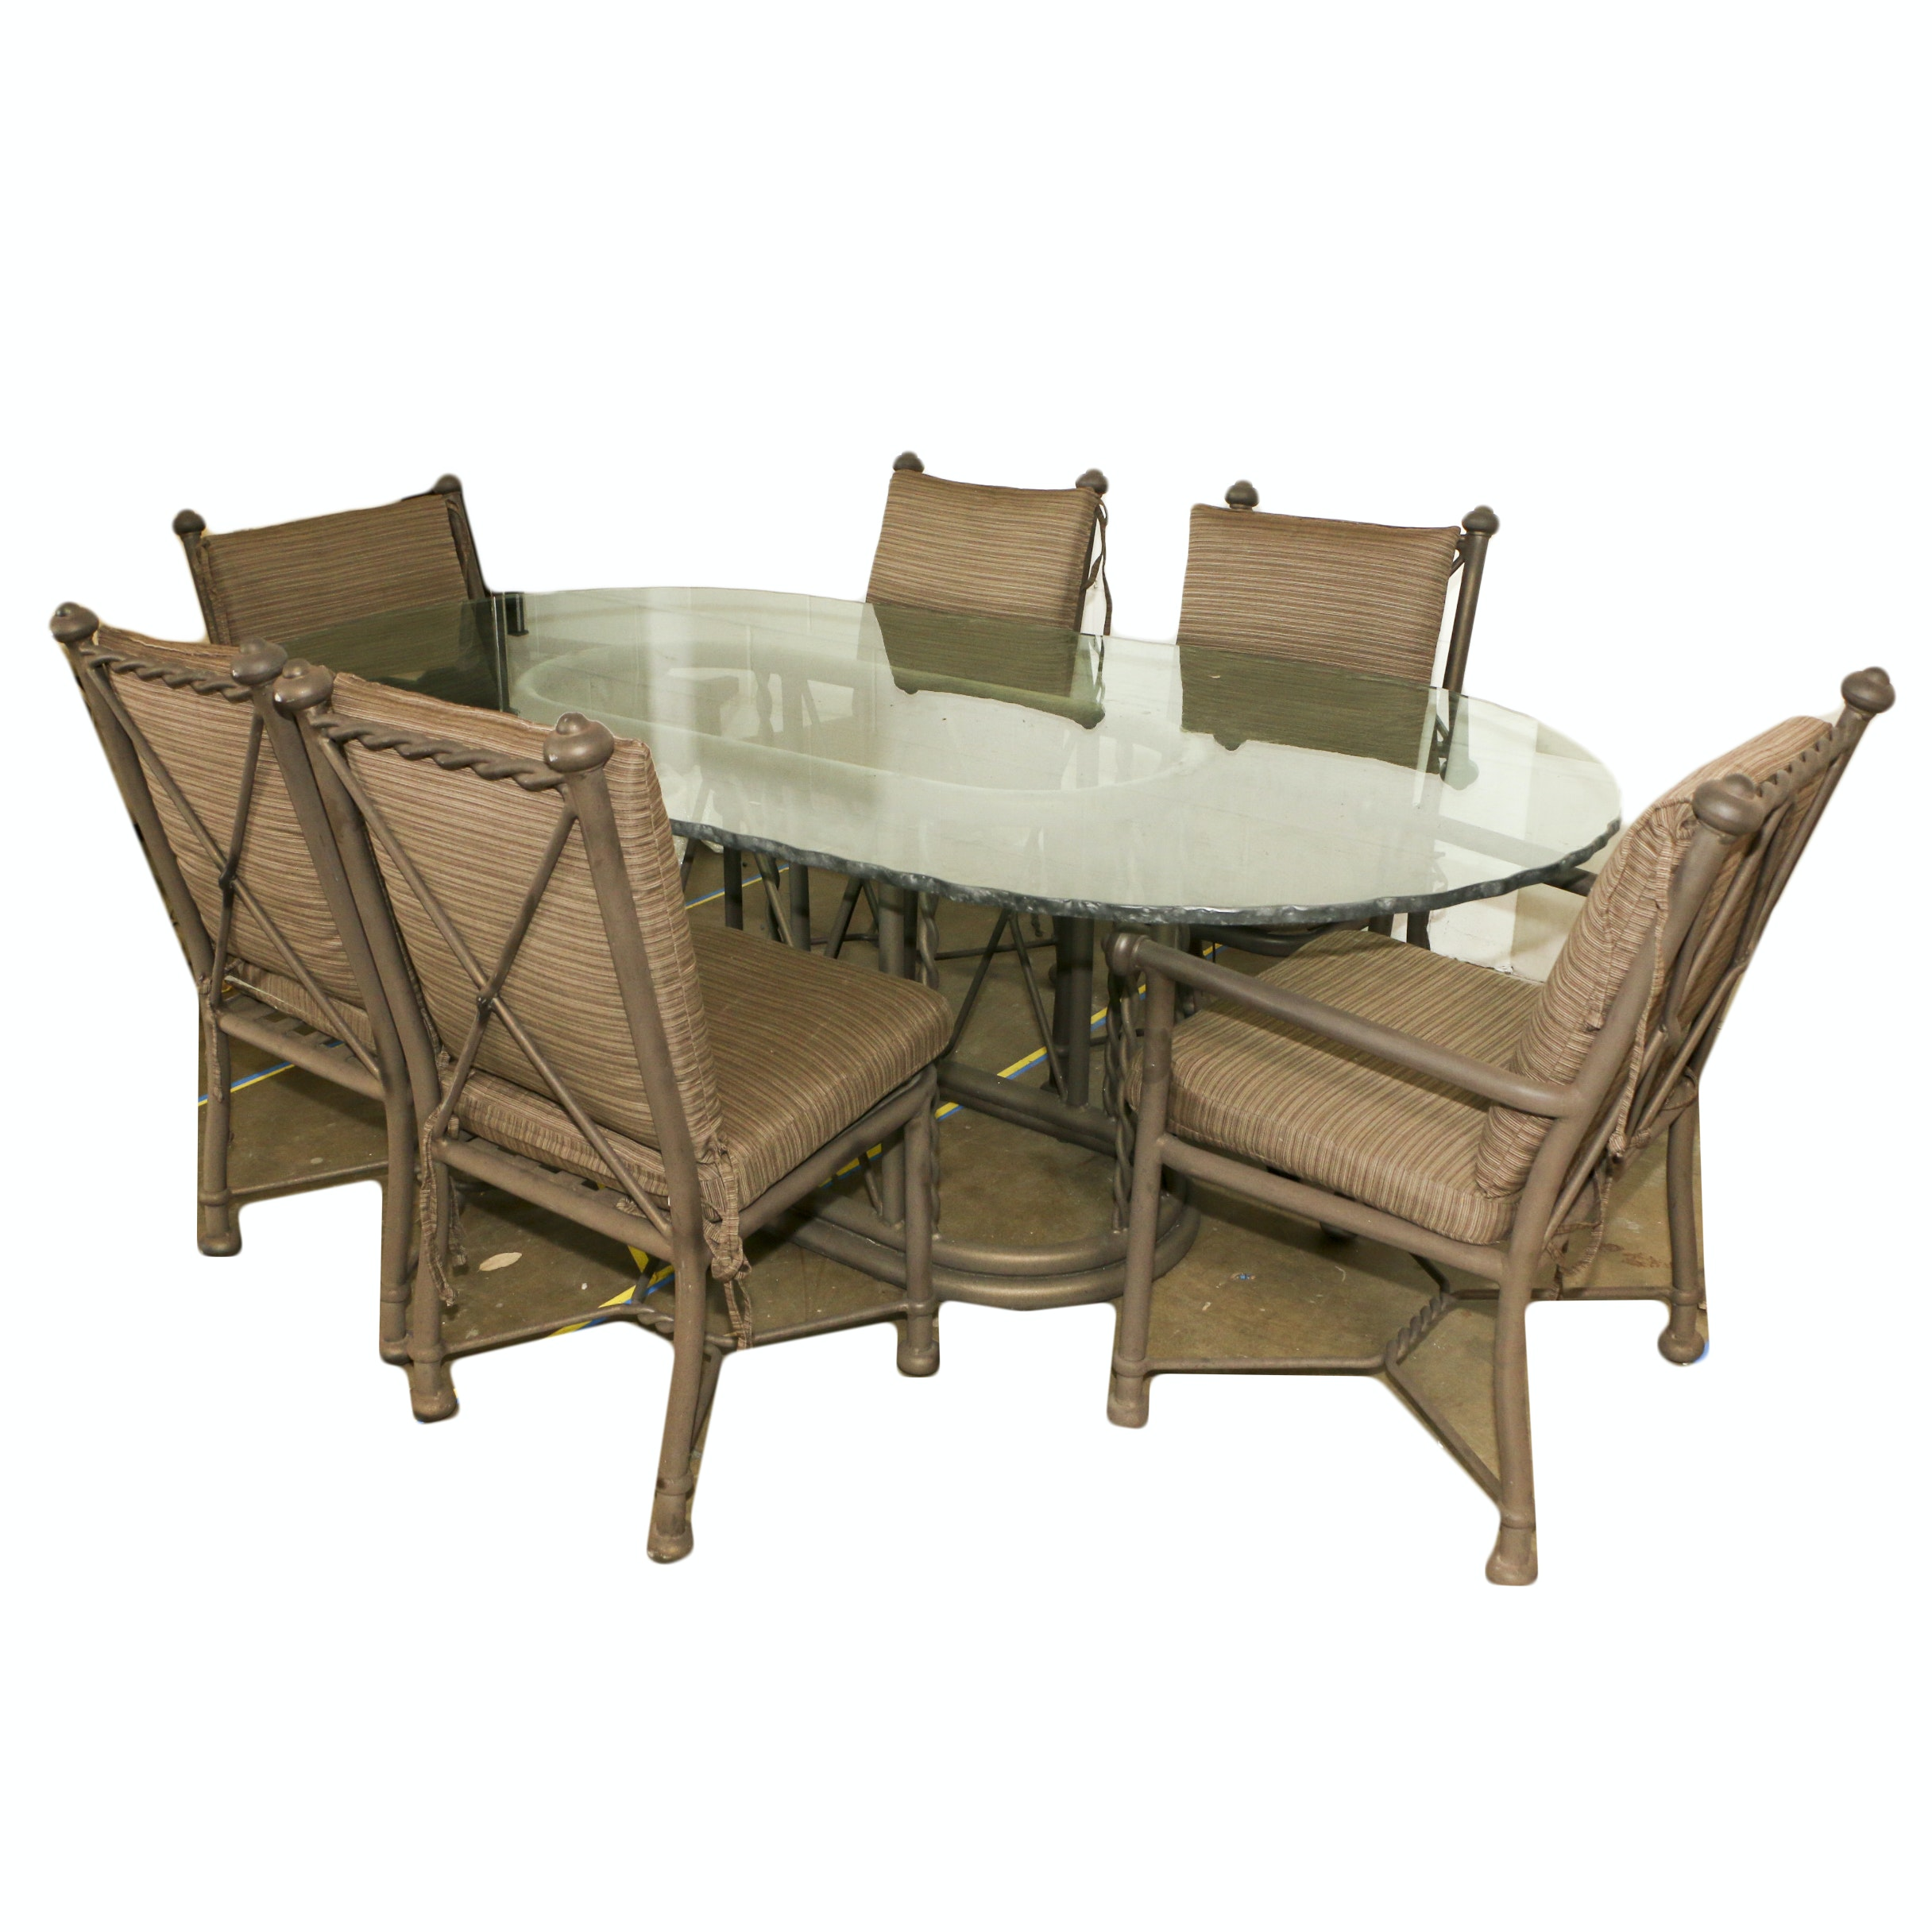 Patio Dining Table with Six Chairs, 21st Century